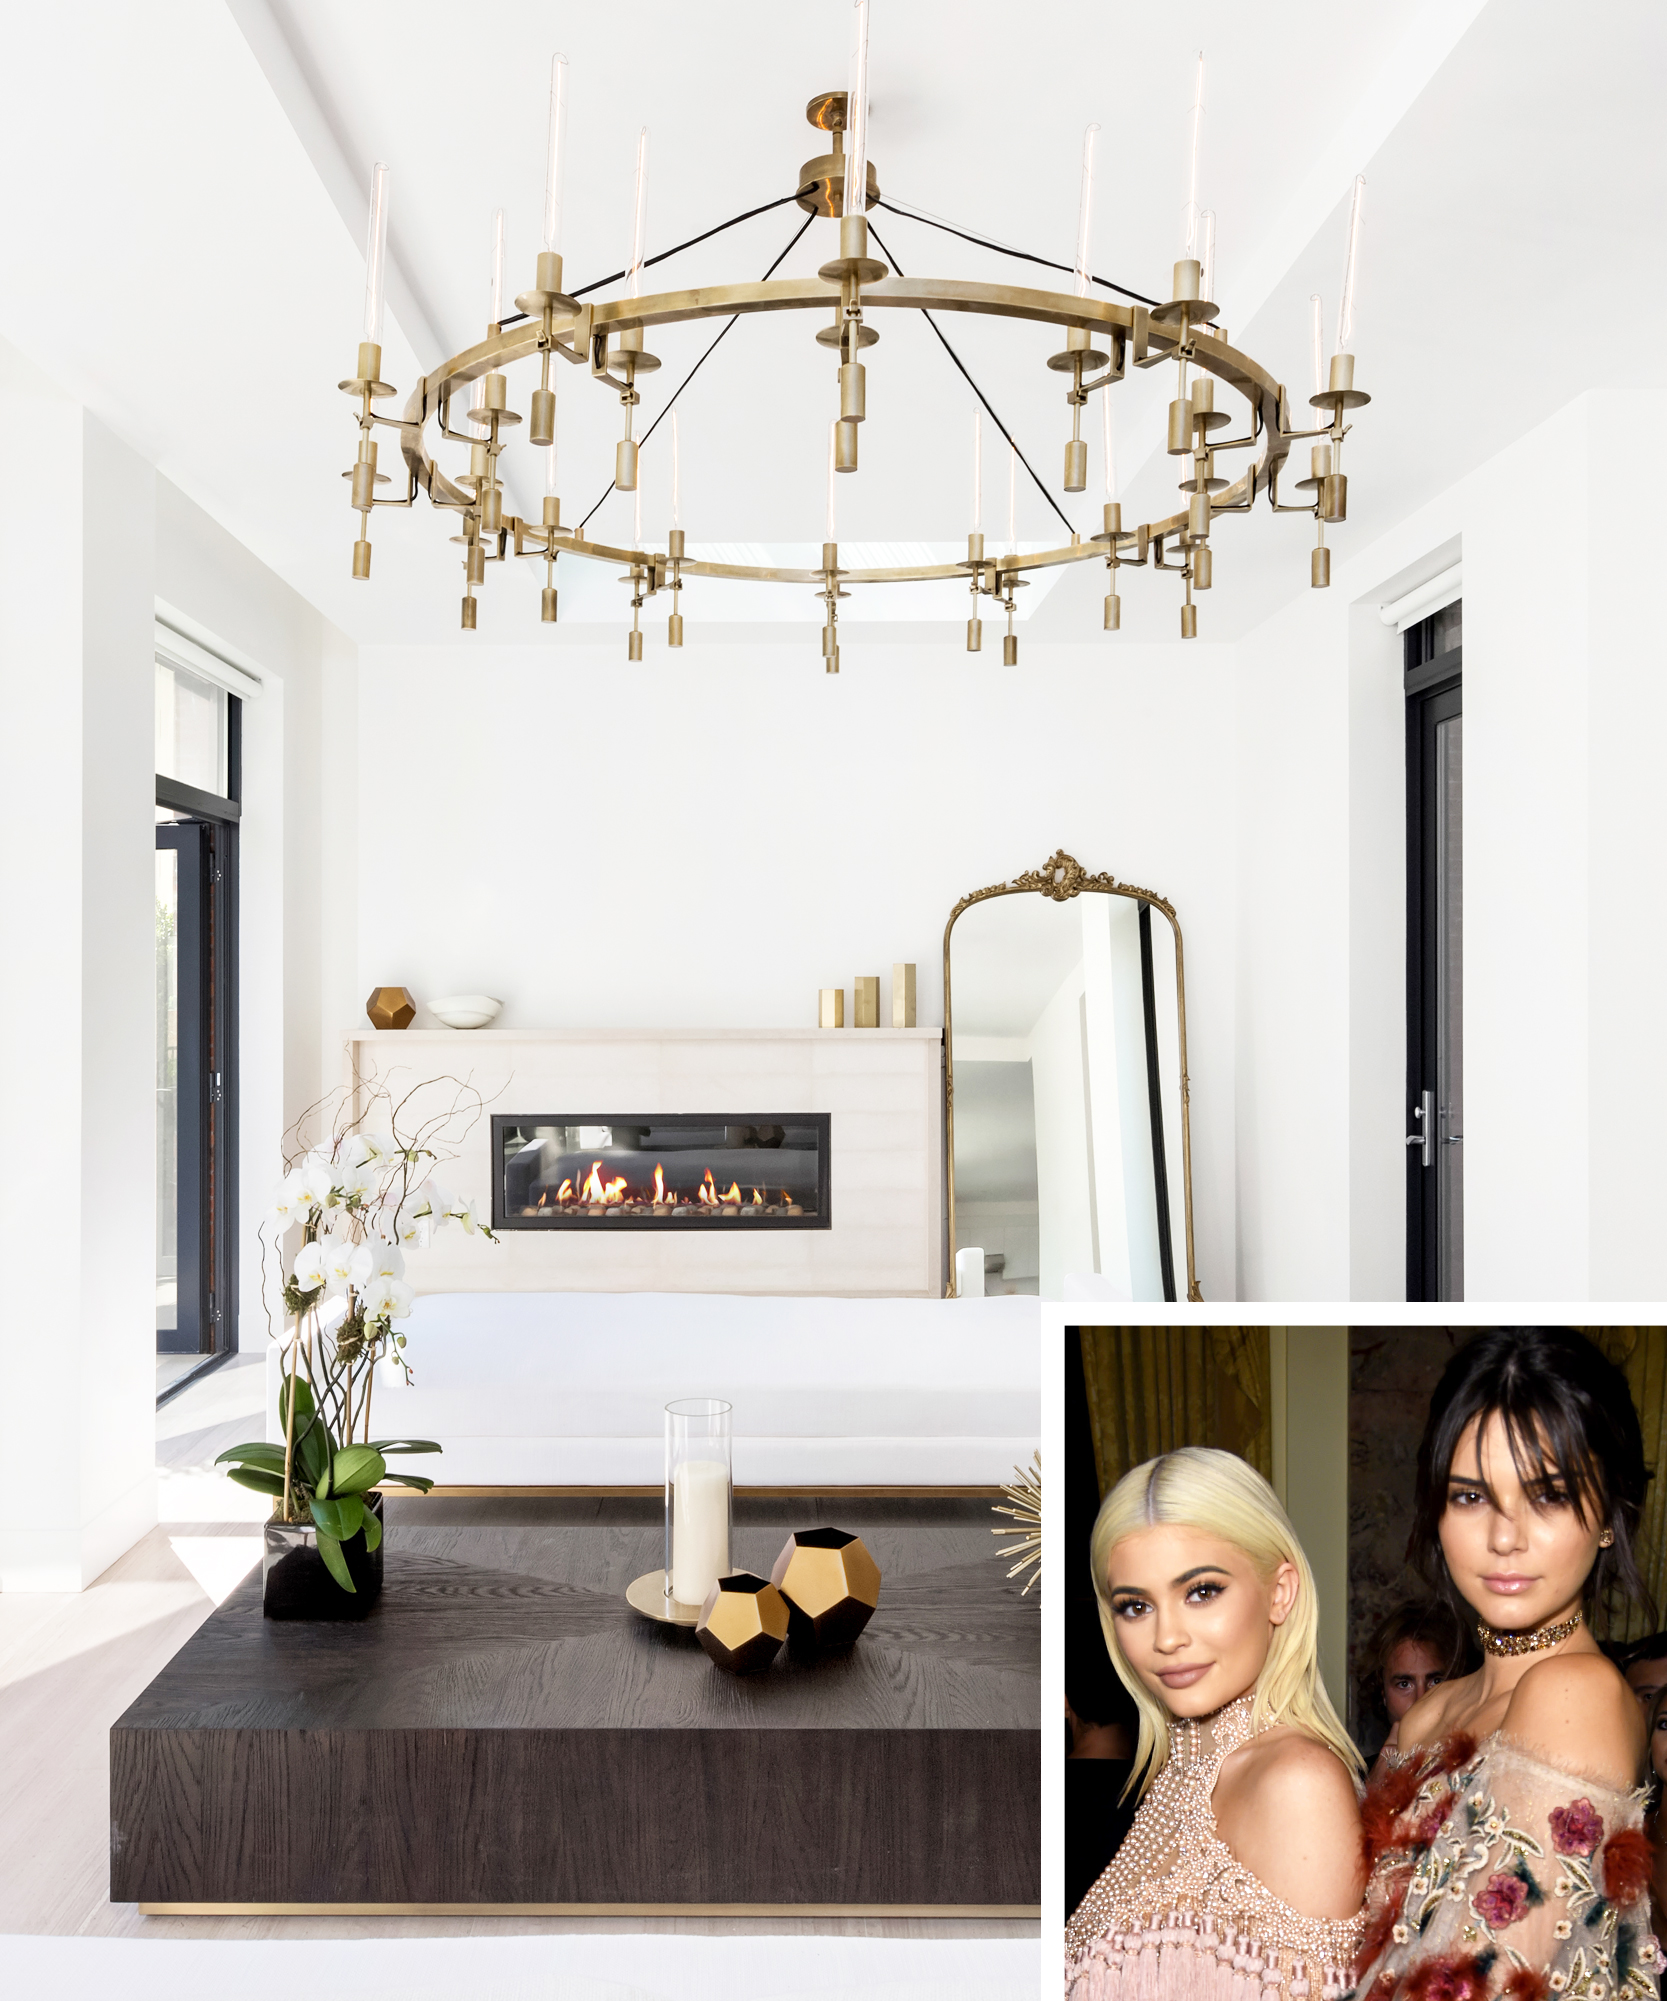 Step Inside the $26.5 Million Apartment Kendall and Kylie Jenner Stayed in (for Free!) During NYFW